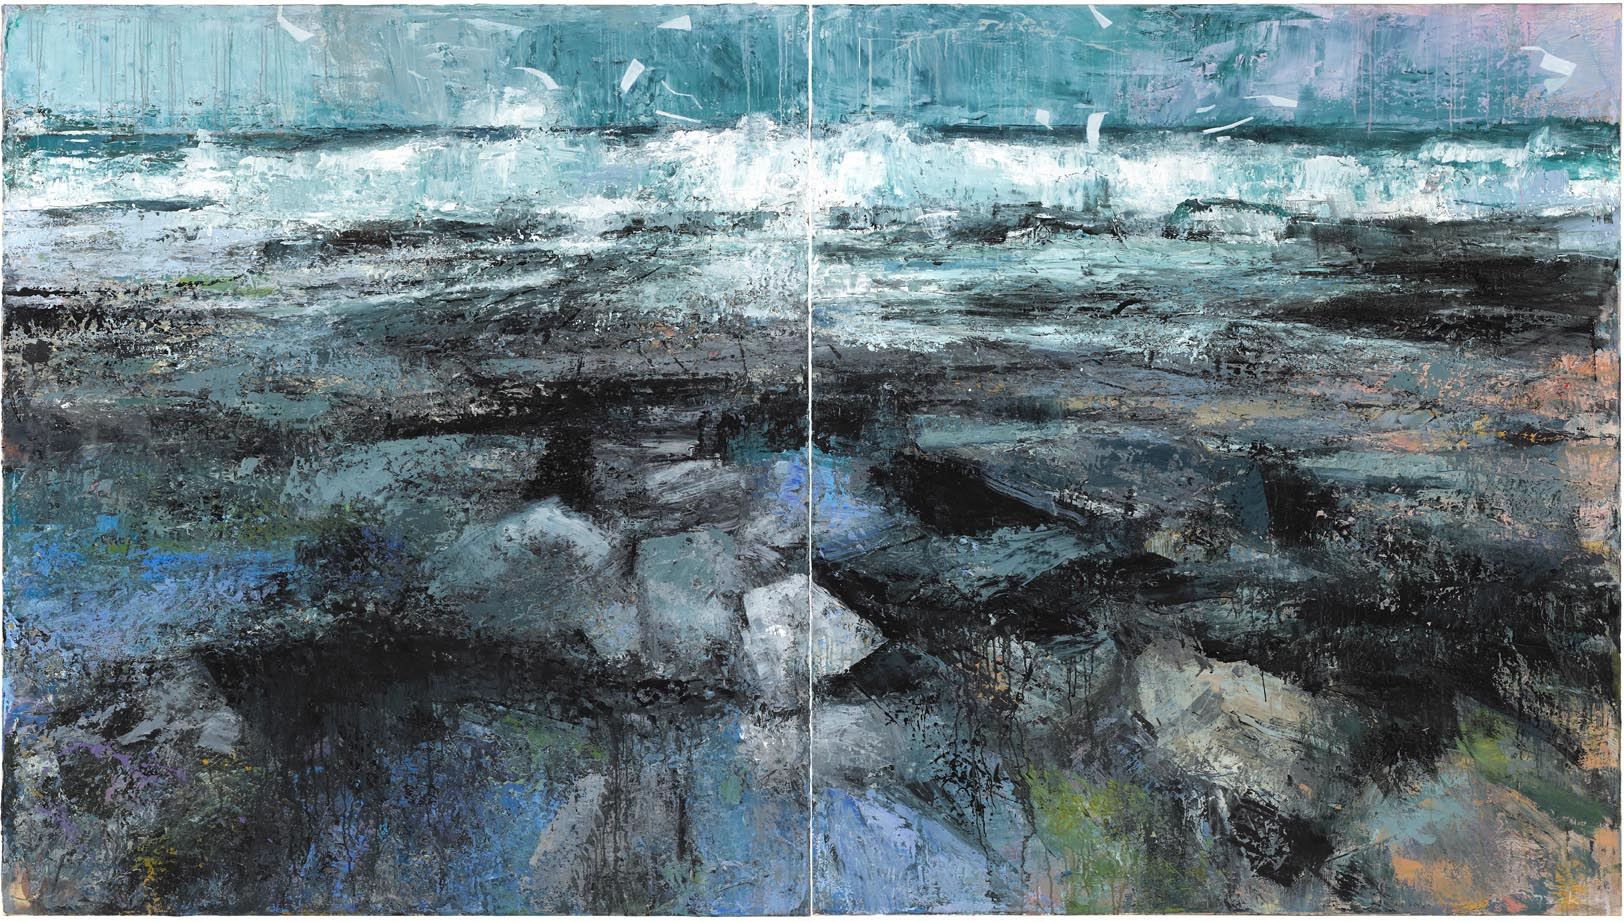 Ocean frequency diptych 2012 183 x 325 cm 6' x 10' 8 oil on canvas